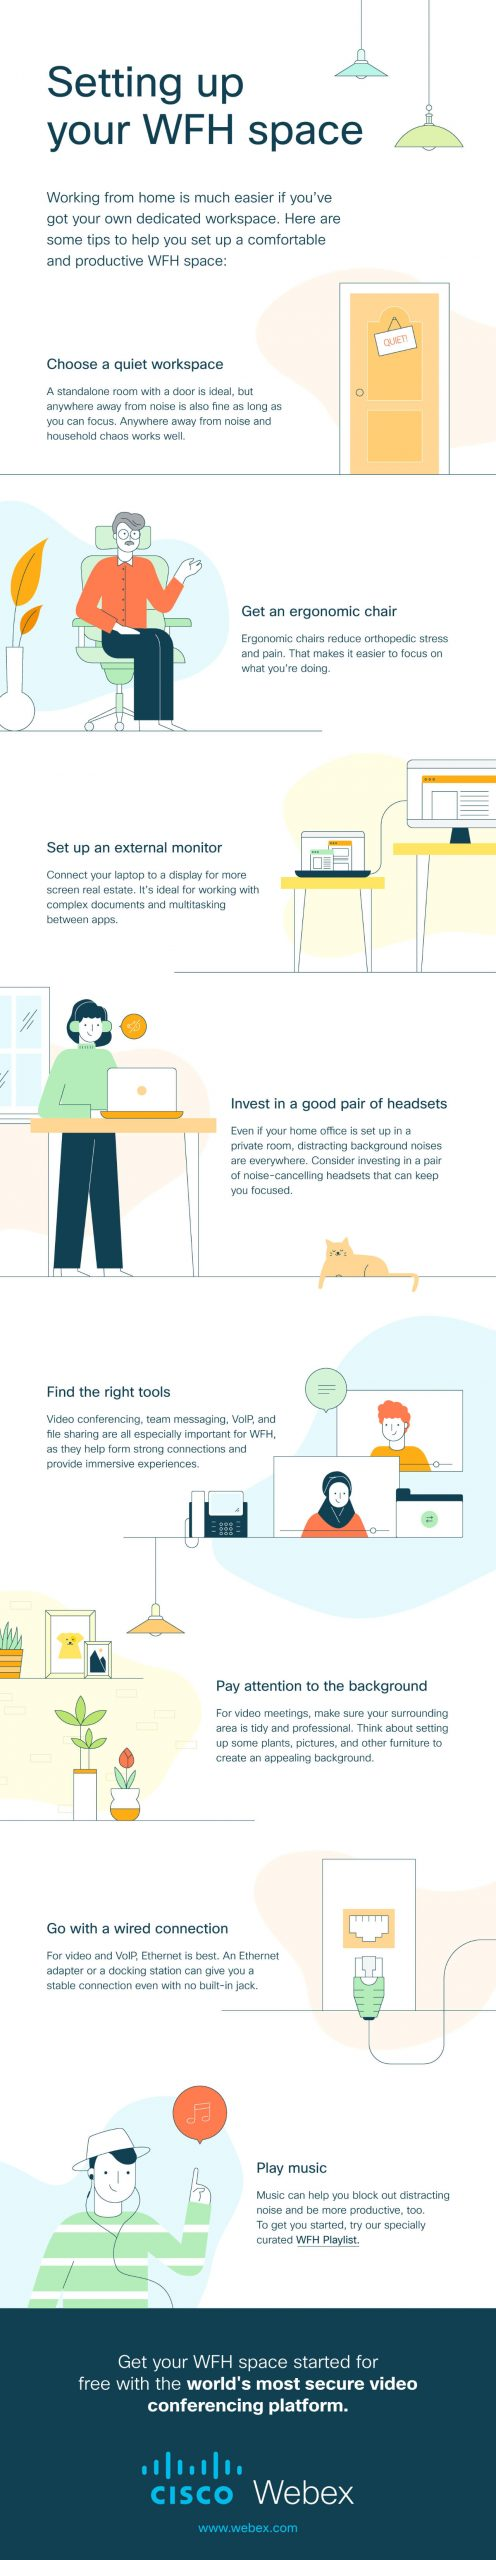 Cisco Webex infographic work from home